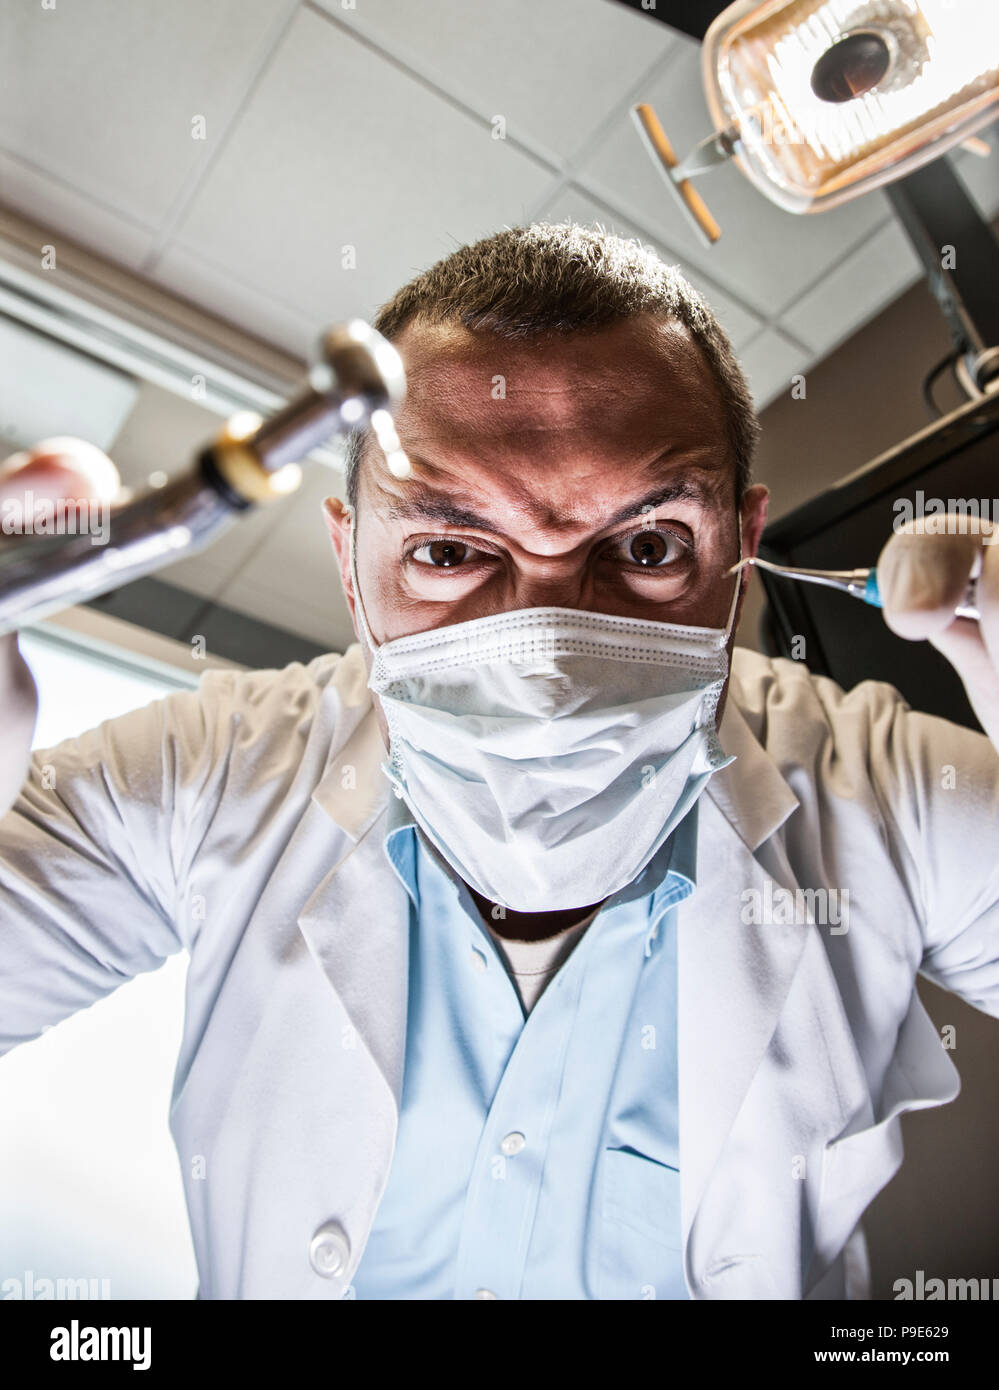 A dramatic view looking up from a patient's perspective of a scary looking dentist holding tools. - Stock Image